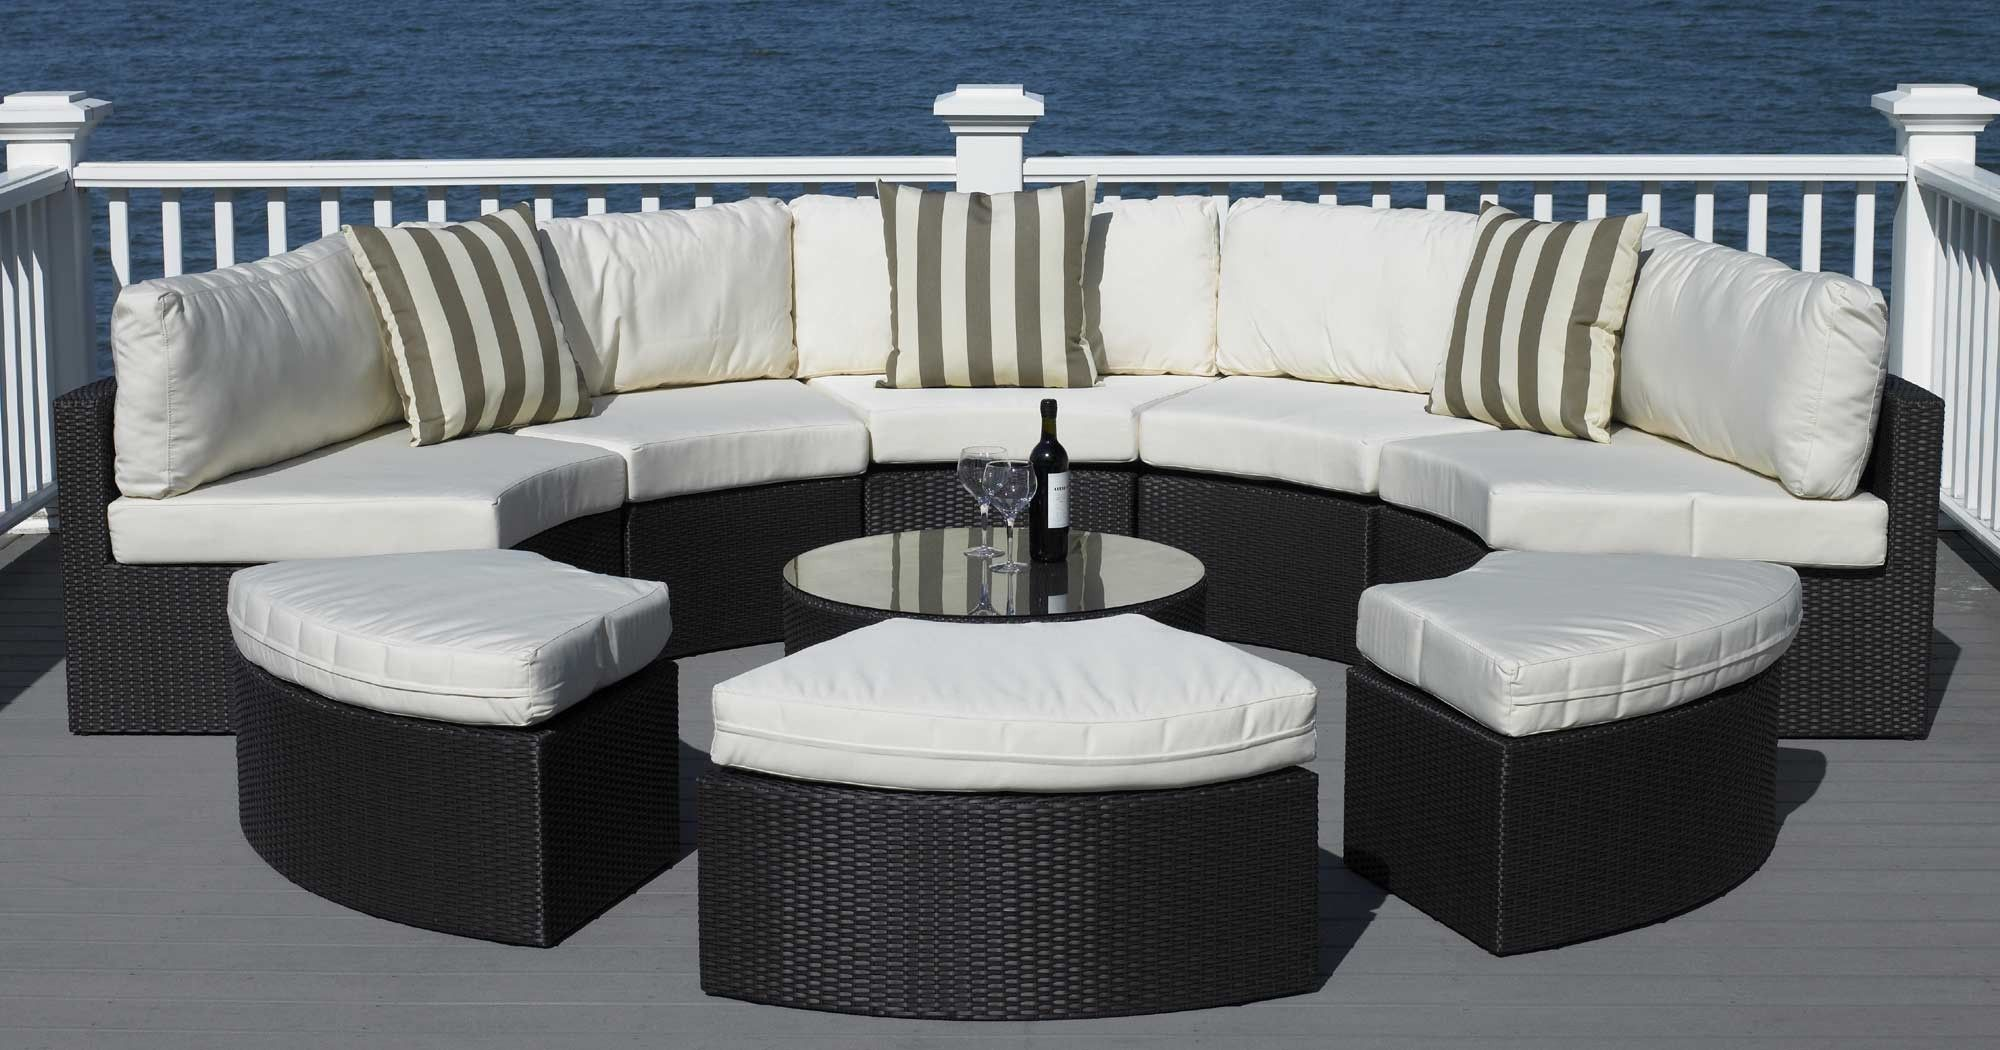 The Santorini Is A Round Outdoor Sectional That Is Built To